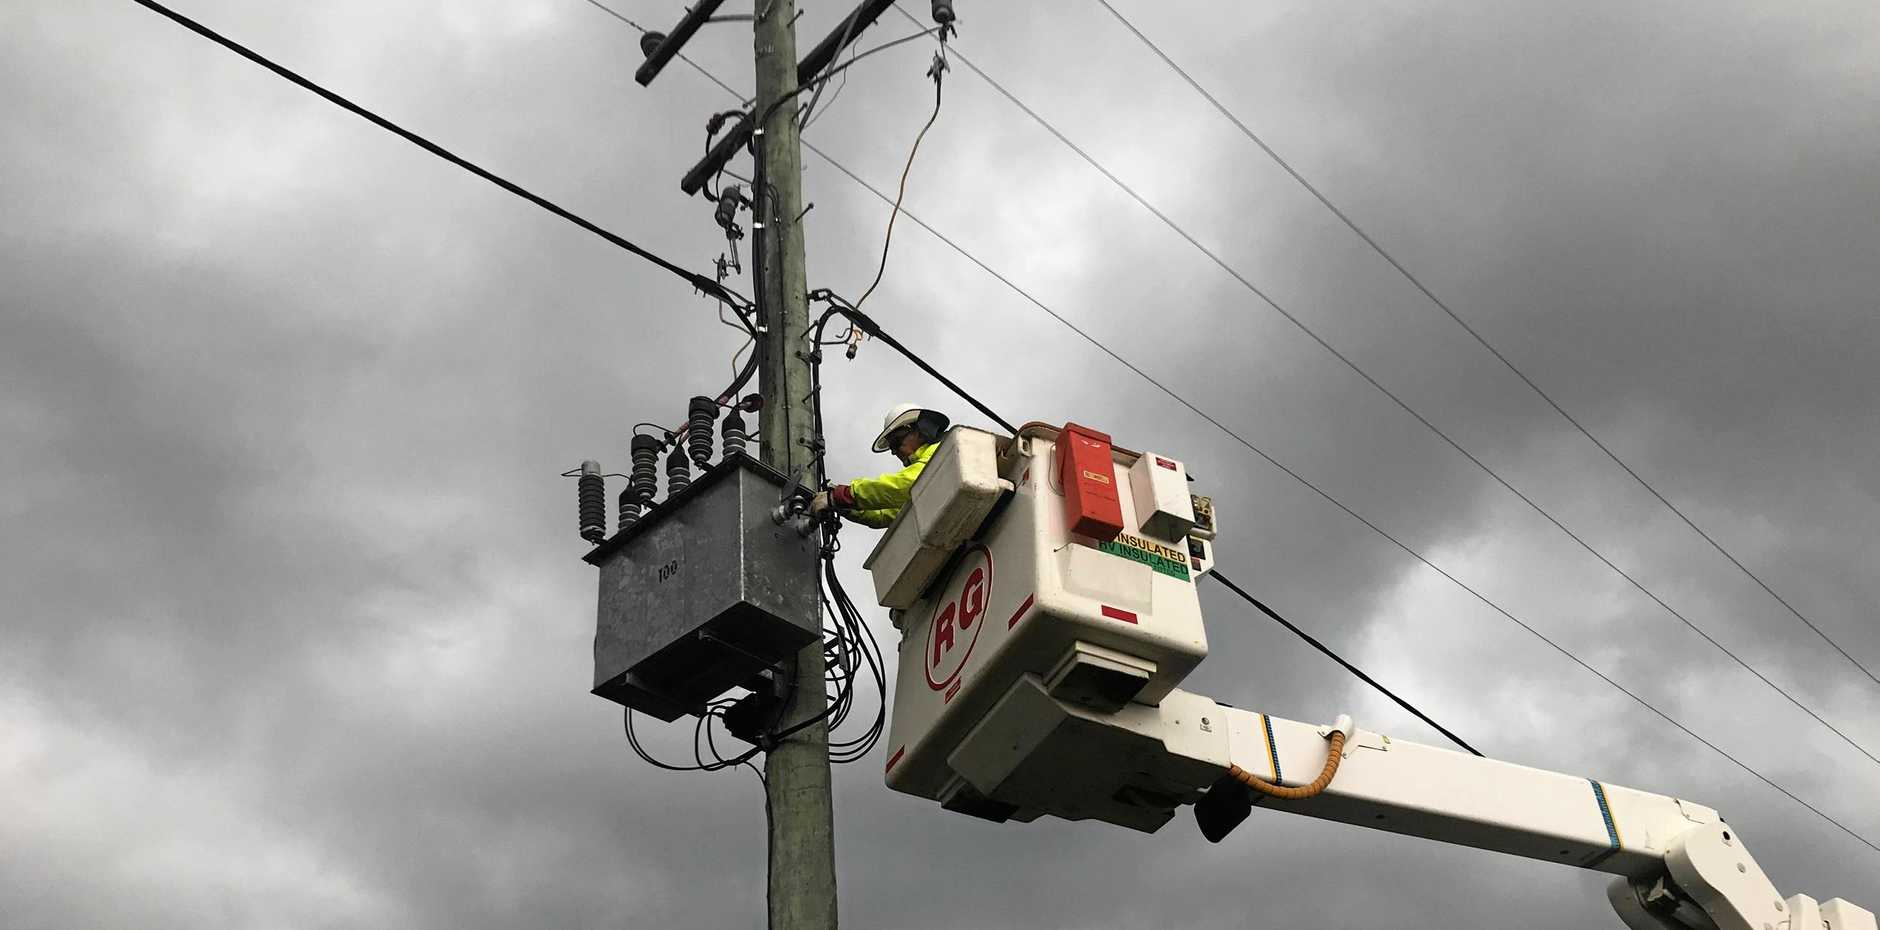 POWER OUTAGES: Bundaberg's Ergon and Energex crews were busy restoring power to more than 35,000 homes across south- east Queensland, Wide Bay Burnett, Fraser Coast and Western Downs. Allan Hall is repairing one of the lines in the Gympie region.